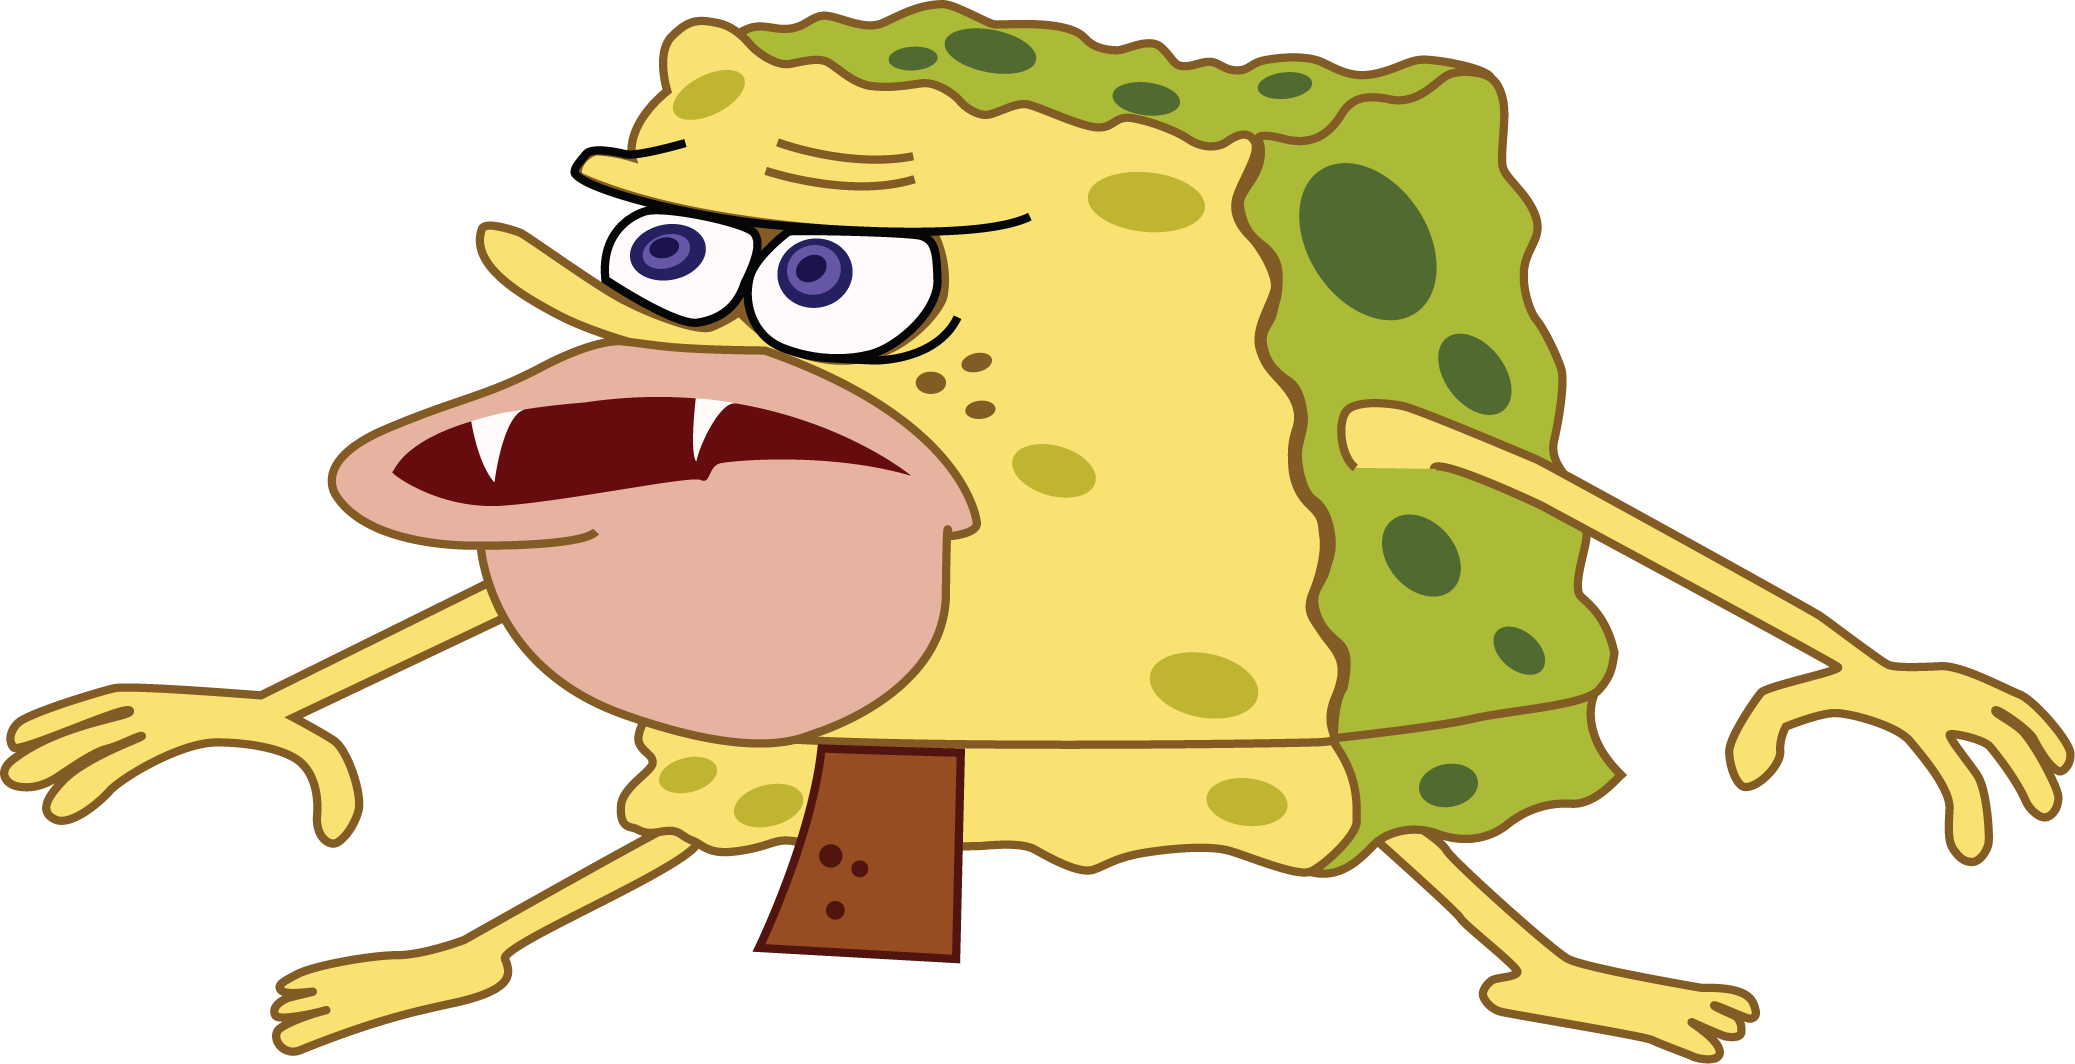 Confused spongebob png. Life as told by